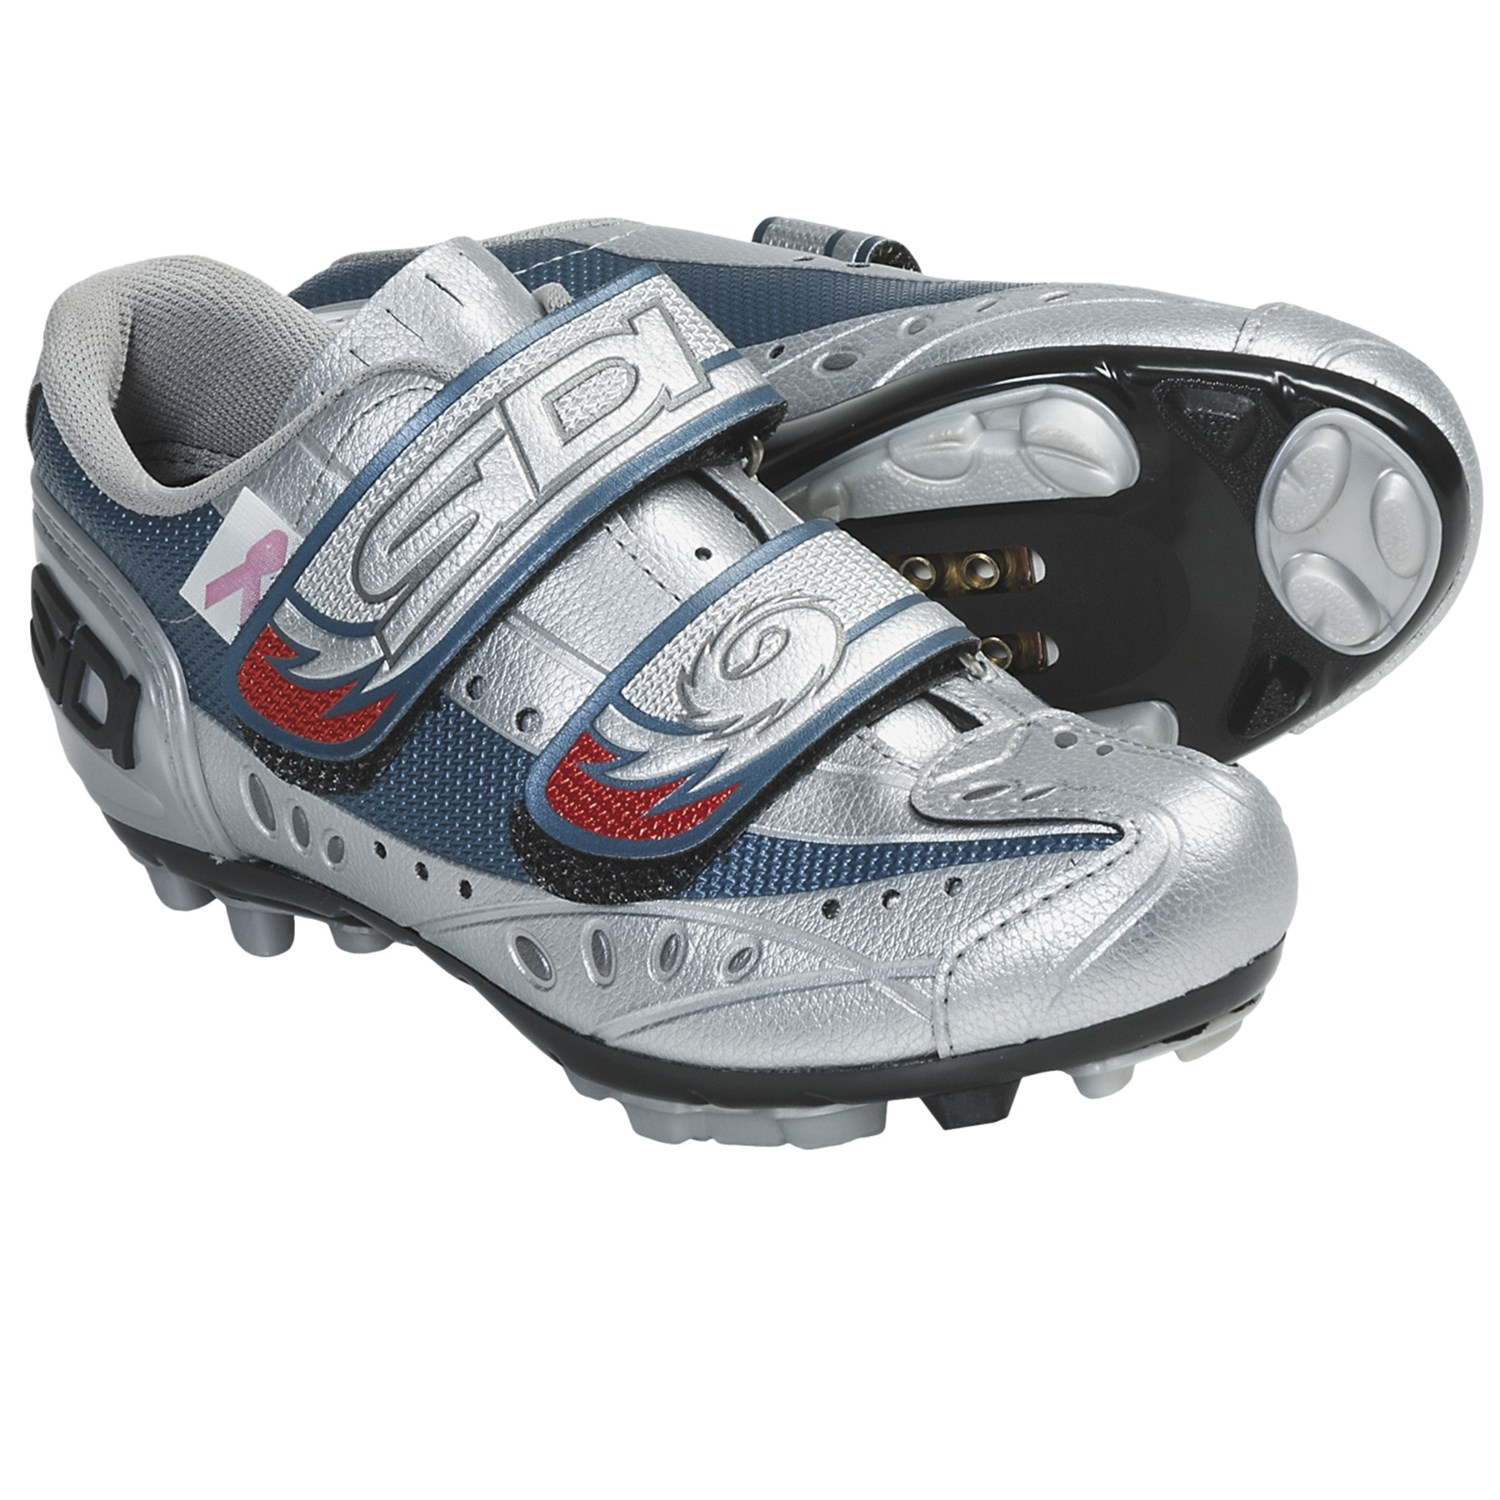 Sidi Blaze Mountain Bike Shoes Size